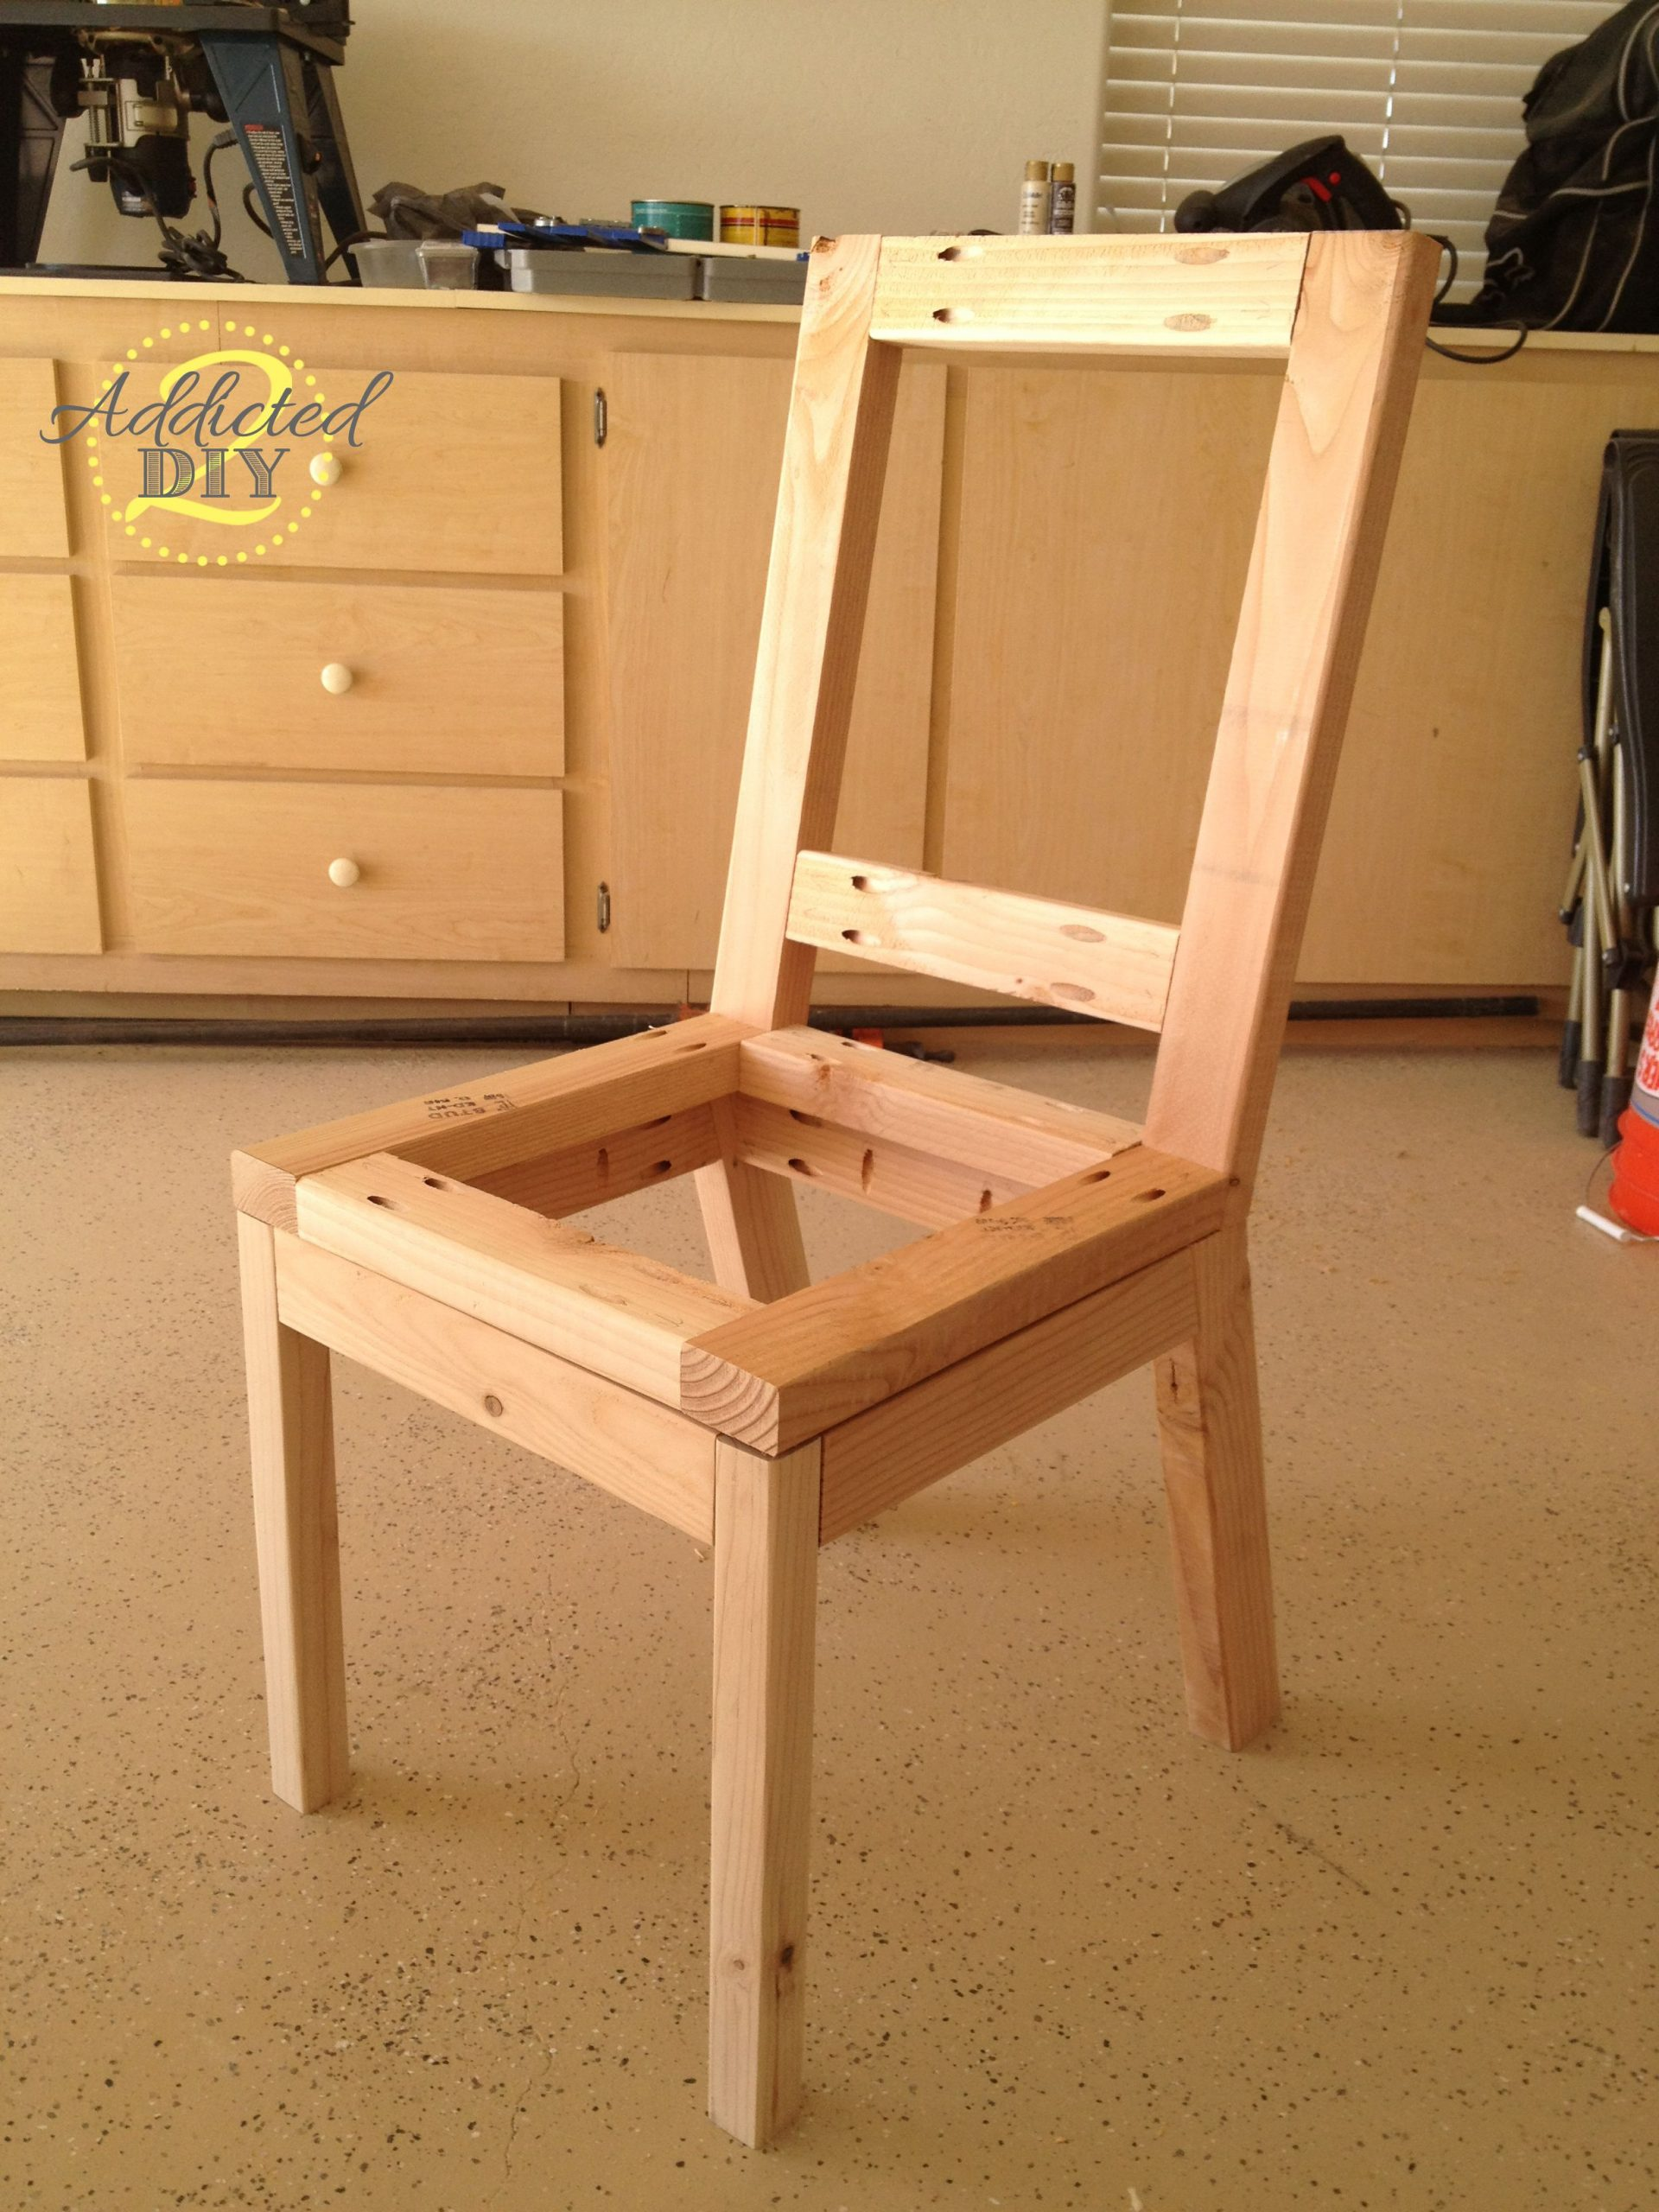 How To Build Upholstered Dining Chairs – Addicted 2 DIY